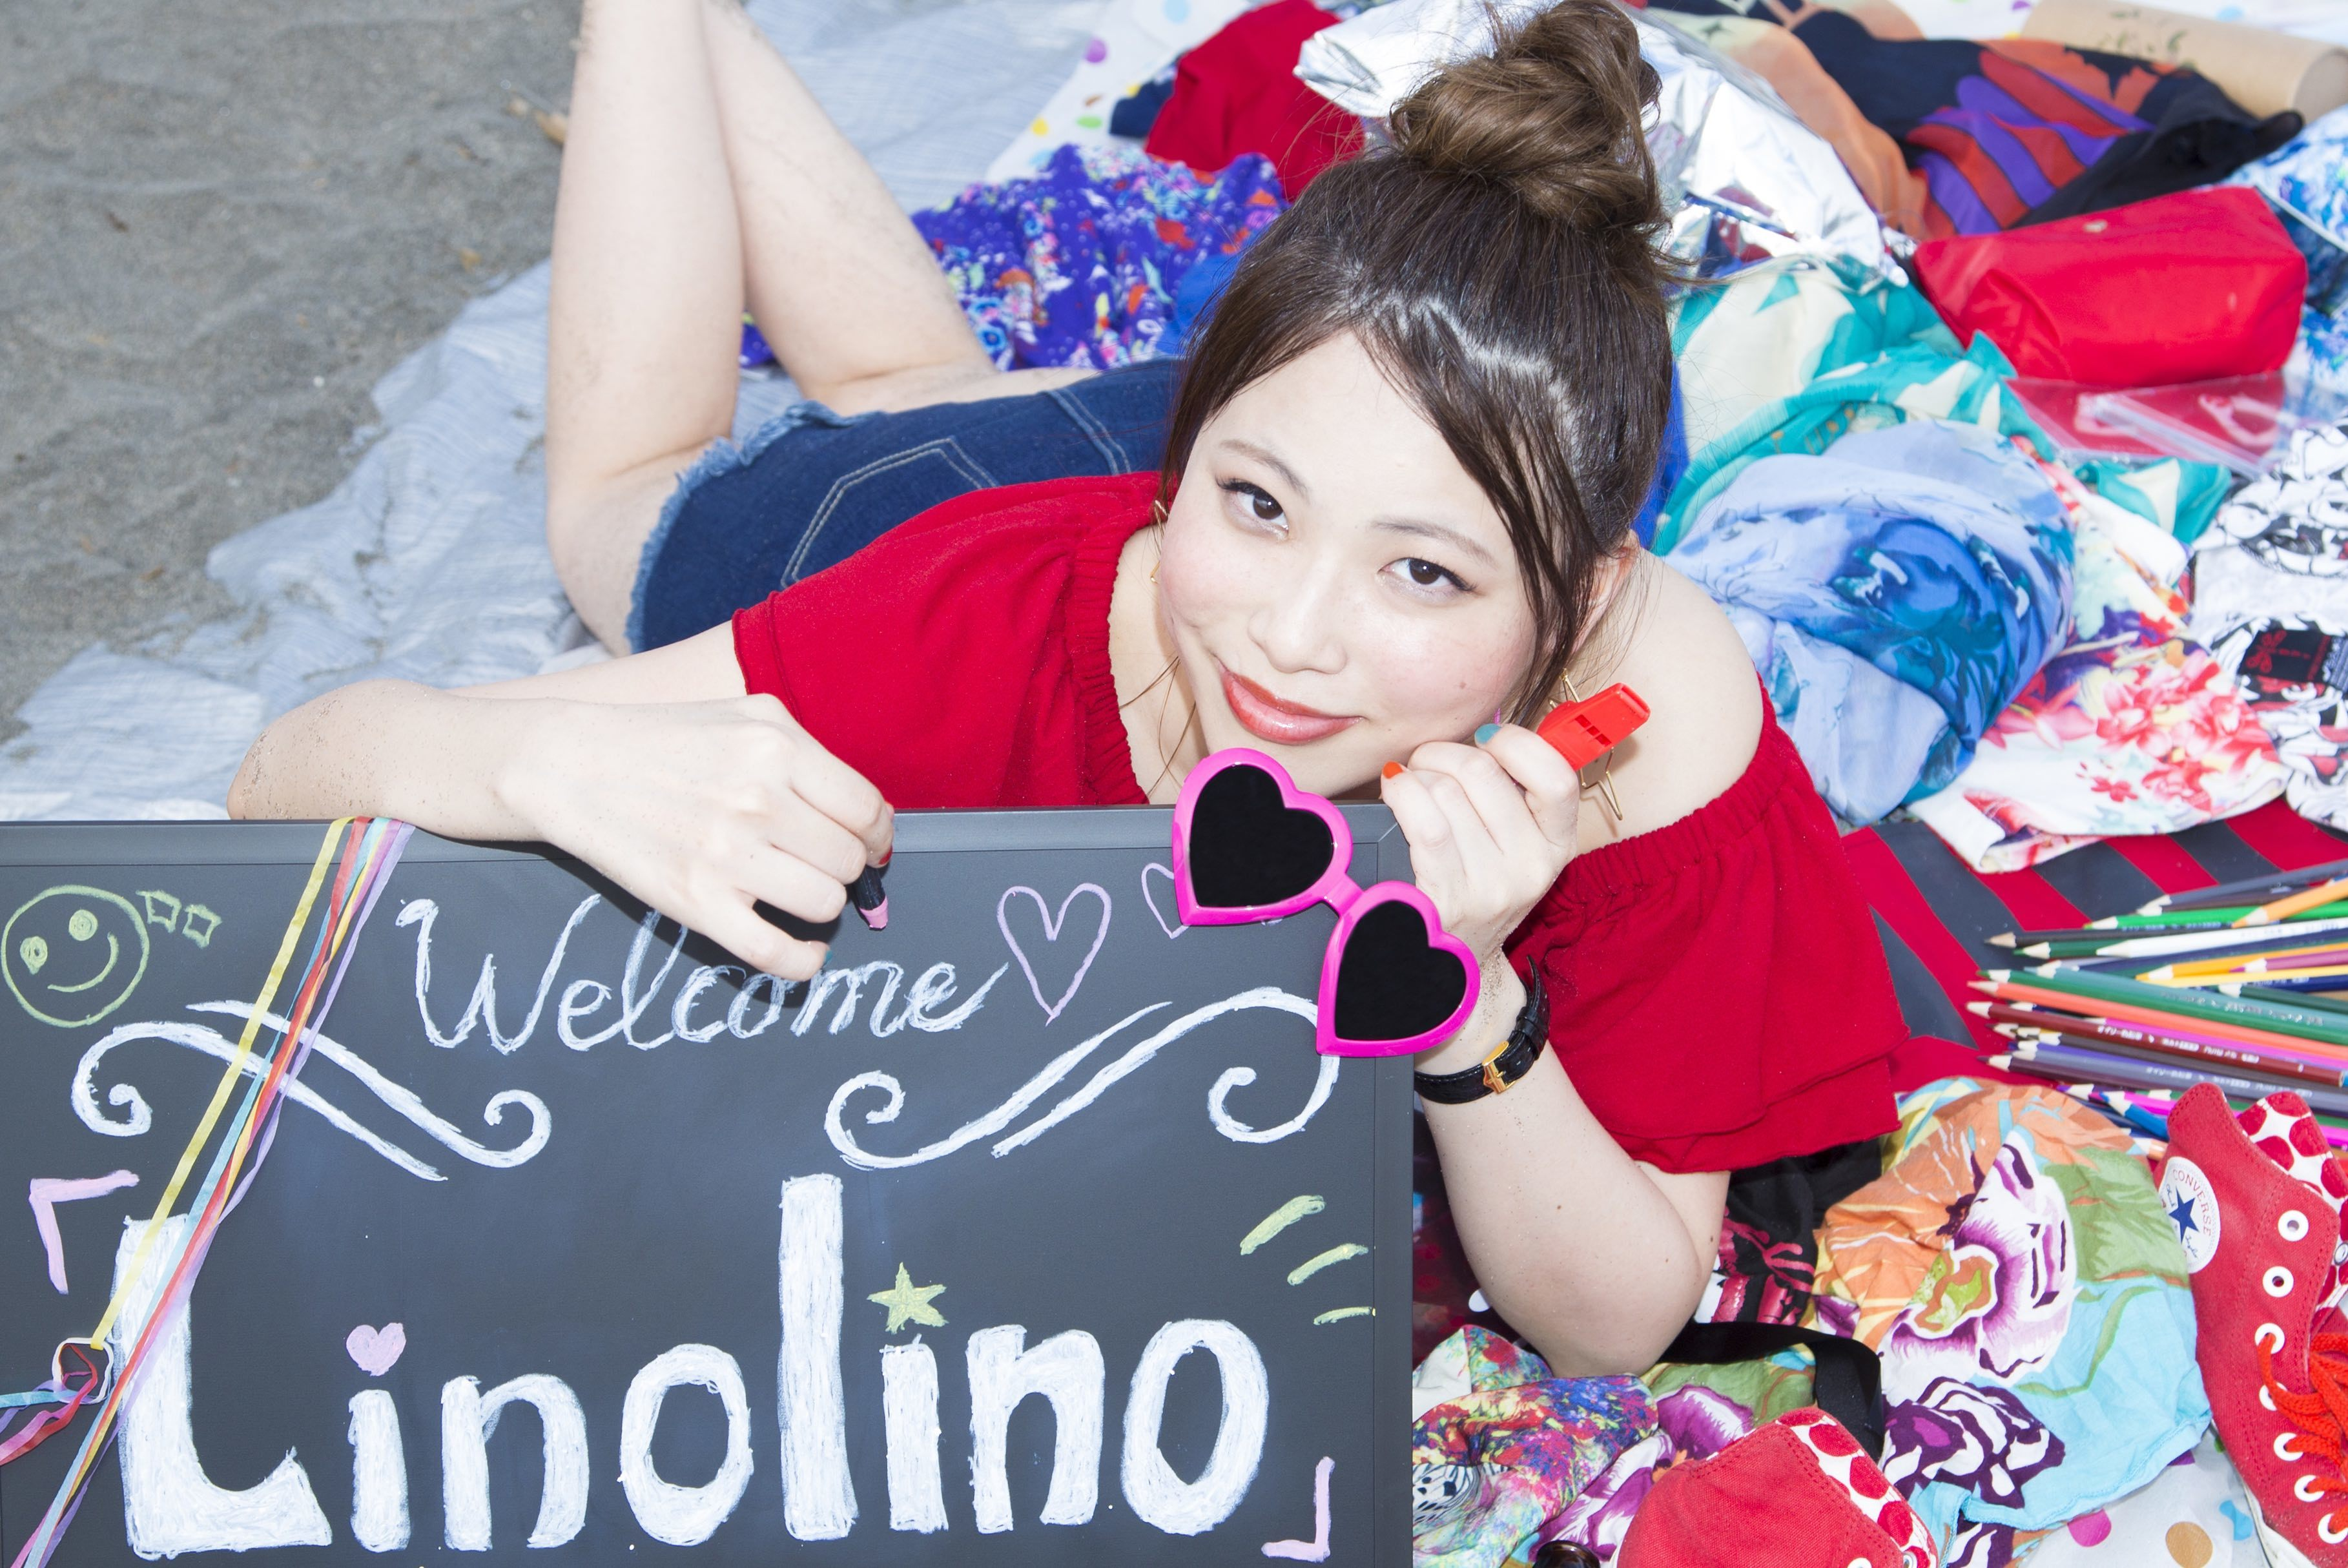 """Linolino Special Days Project!!""✰300%目標✰"